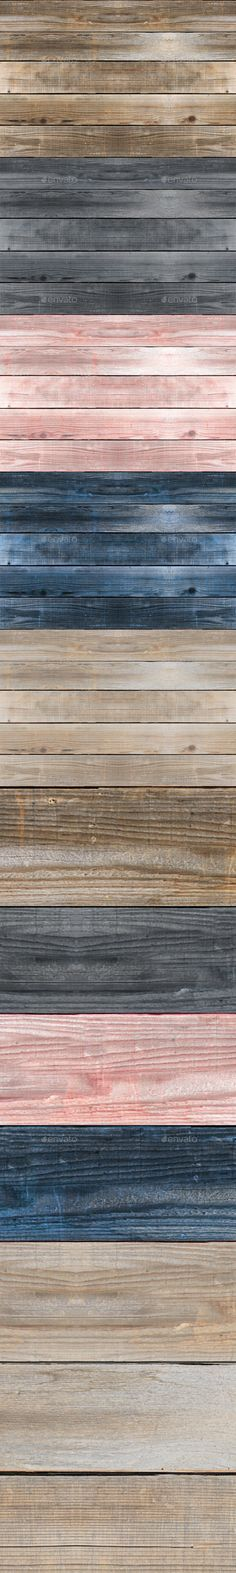 Wood Texture v.1 — Photoshop PSD #rust #texture • Available here → https://graphicriver.net/item/wood-texture-v1/10333688?ref=pxcr